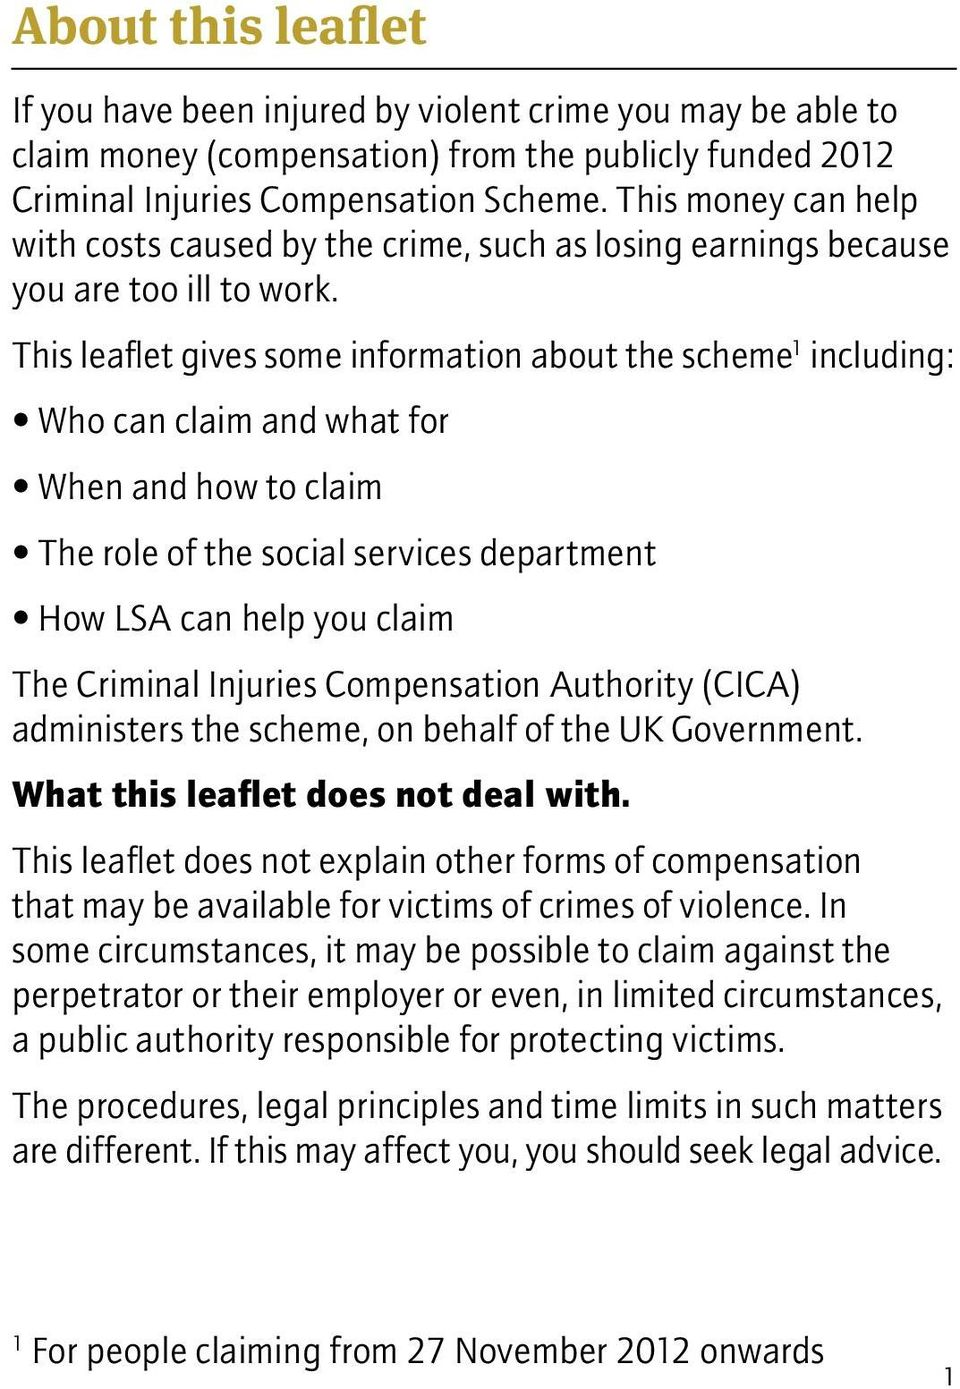 This leaflet gives some information about the scheme 1 including: Who can claim and what for When and how to claim The role of the social services department How LSA can help you claim The Criminal